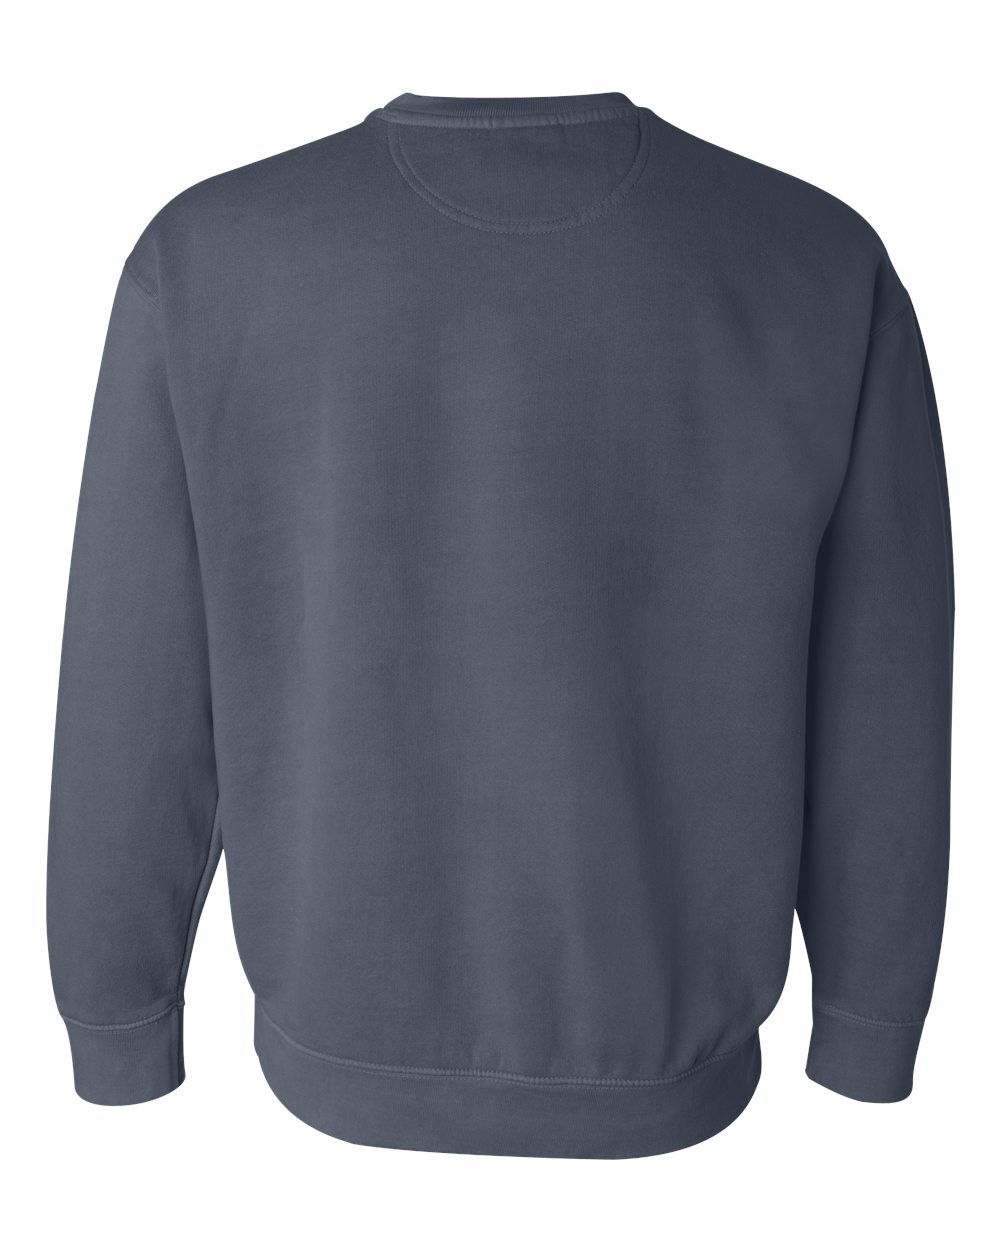 Comfort-Colors-Mens-Garment-Dyed-Ringspun-Crewneck-Sweatshirt-1566-up-to-3XL miniature 28